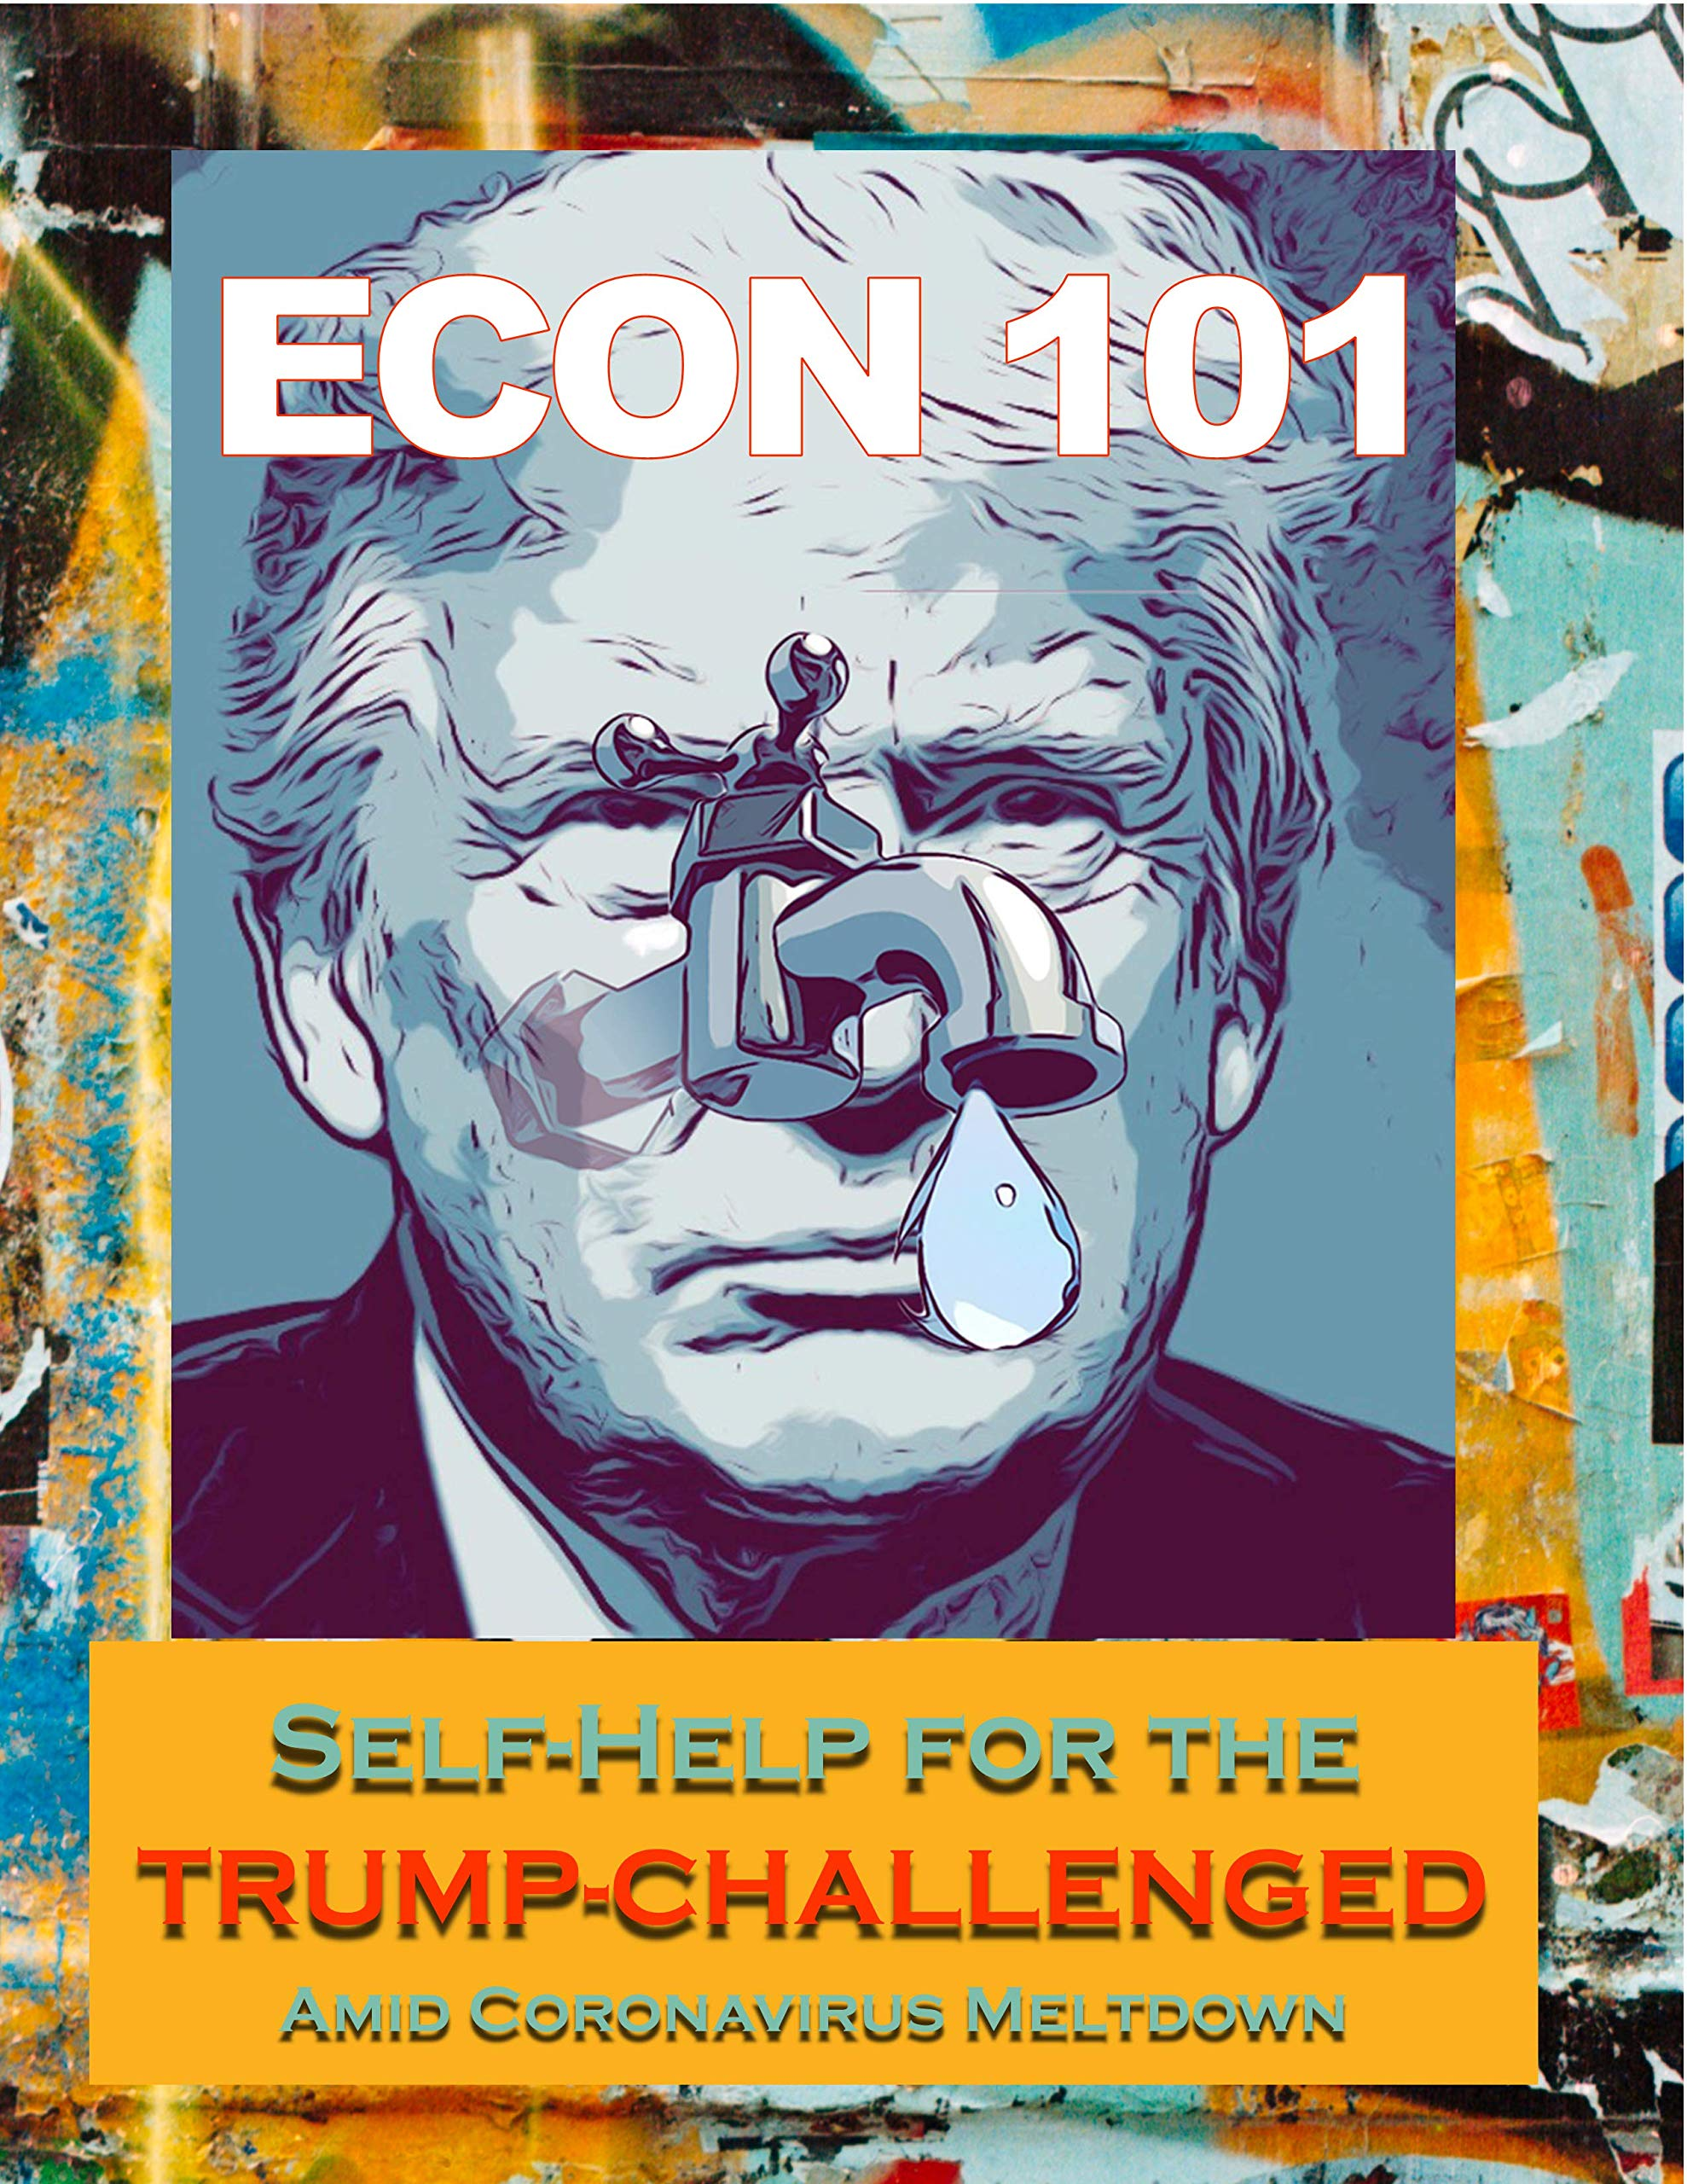 Econ 101 - Your Guide to We the People Capitalism: Self-Help for the Trump-Challenged Amid Coronavirus Meltdown